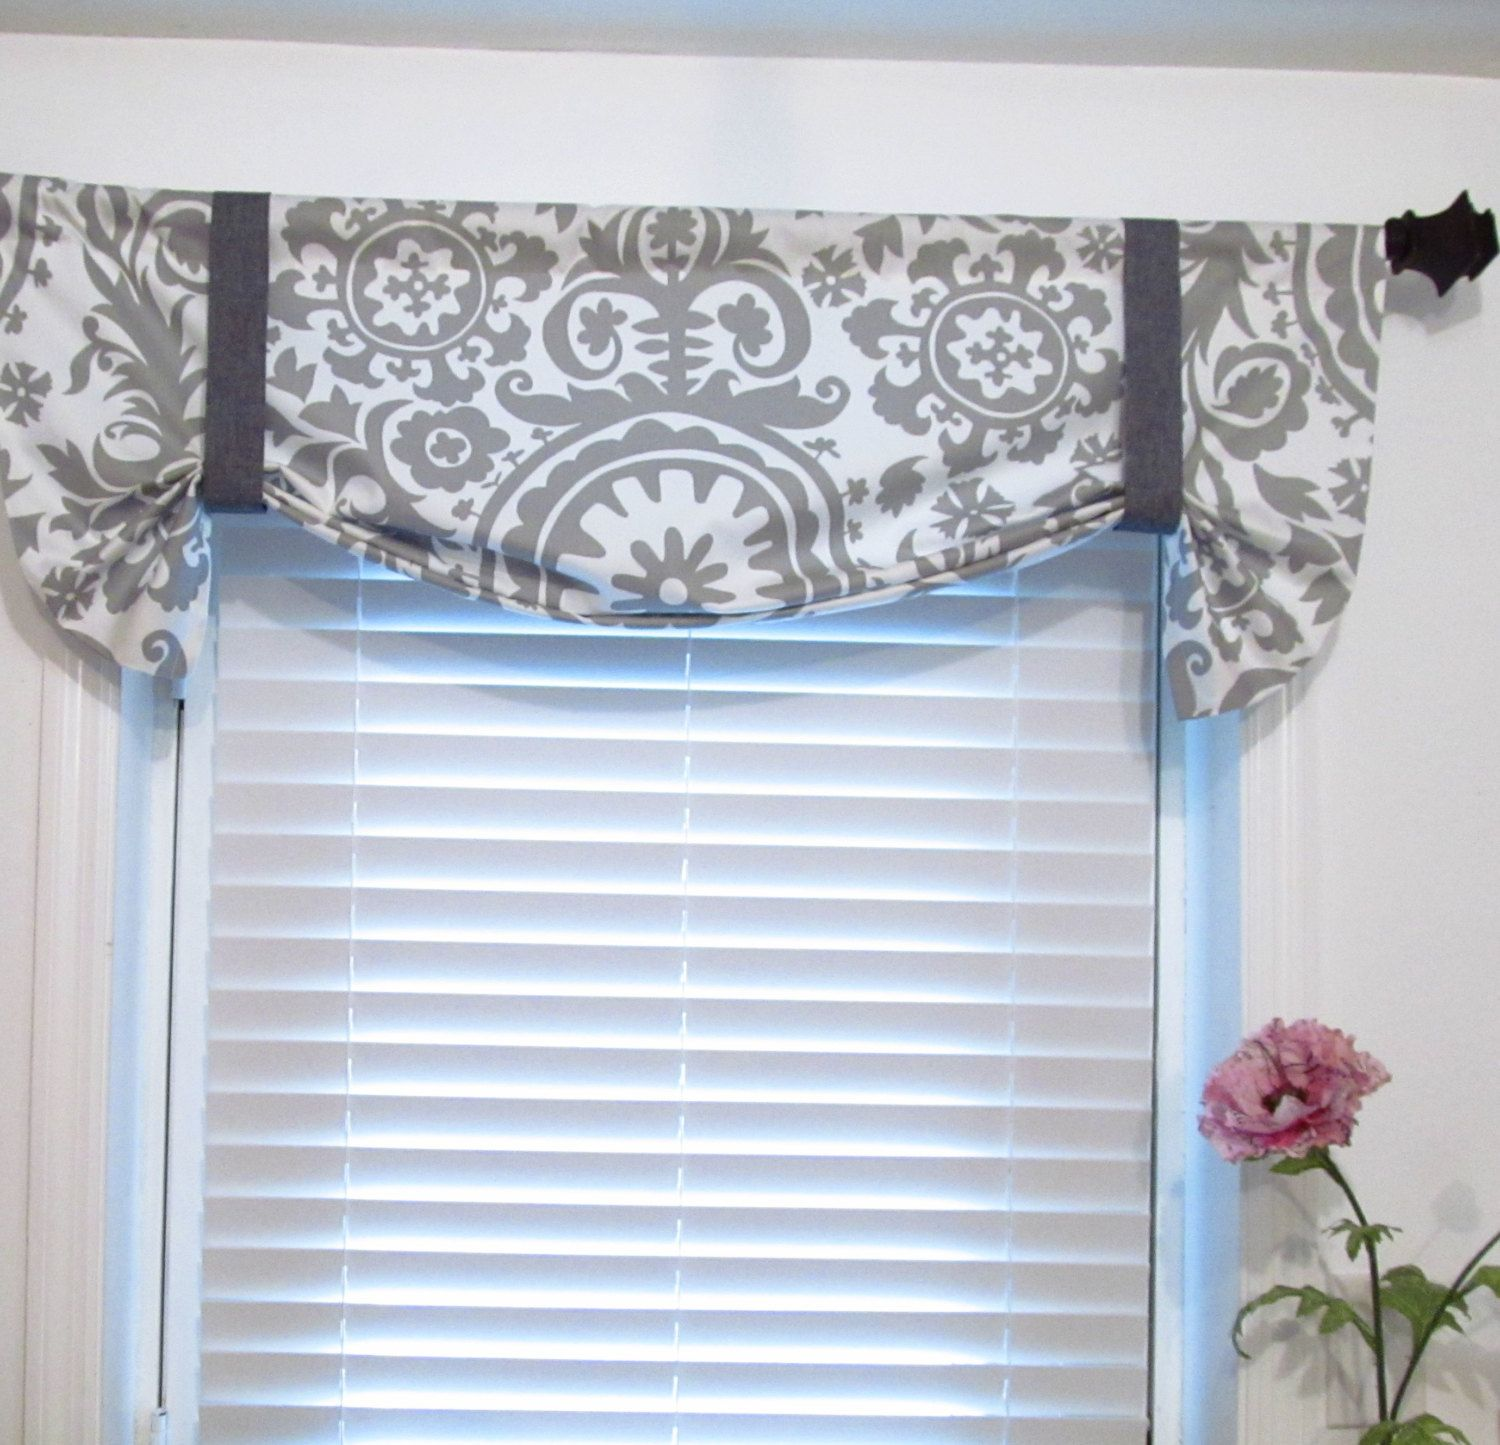 Tie Up Curtain Valance Suzani Storm Grey By Supplierofdreams Tie Up Curtains Valance Curtains Grey Kitchen Curtains